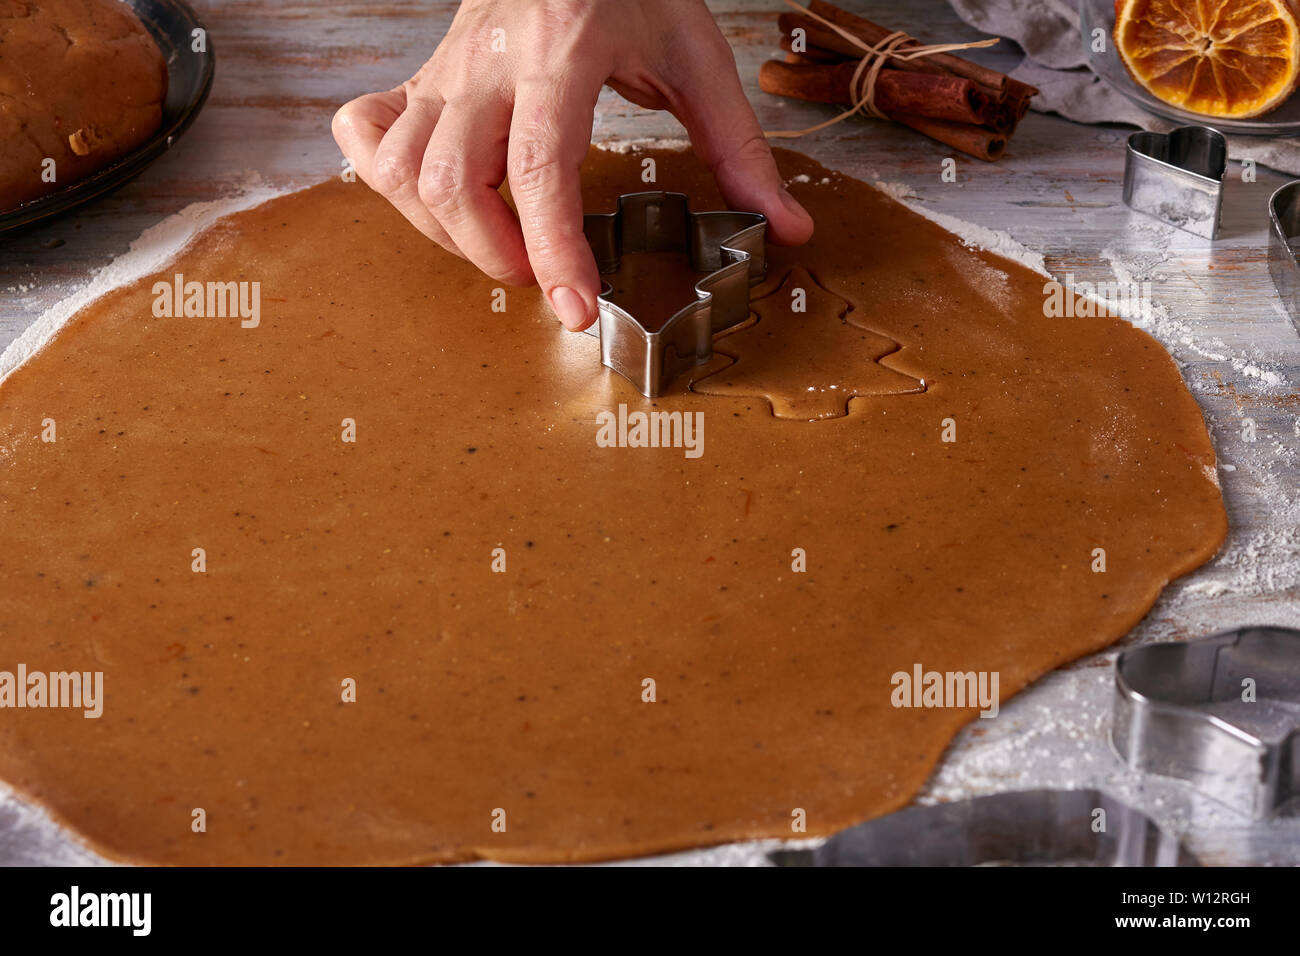 Woman's hands make gingerbread cookies shapes from dough - Stock Image